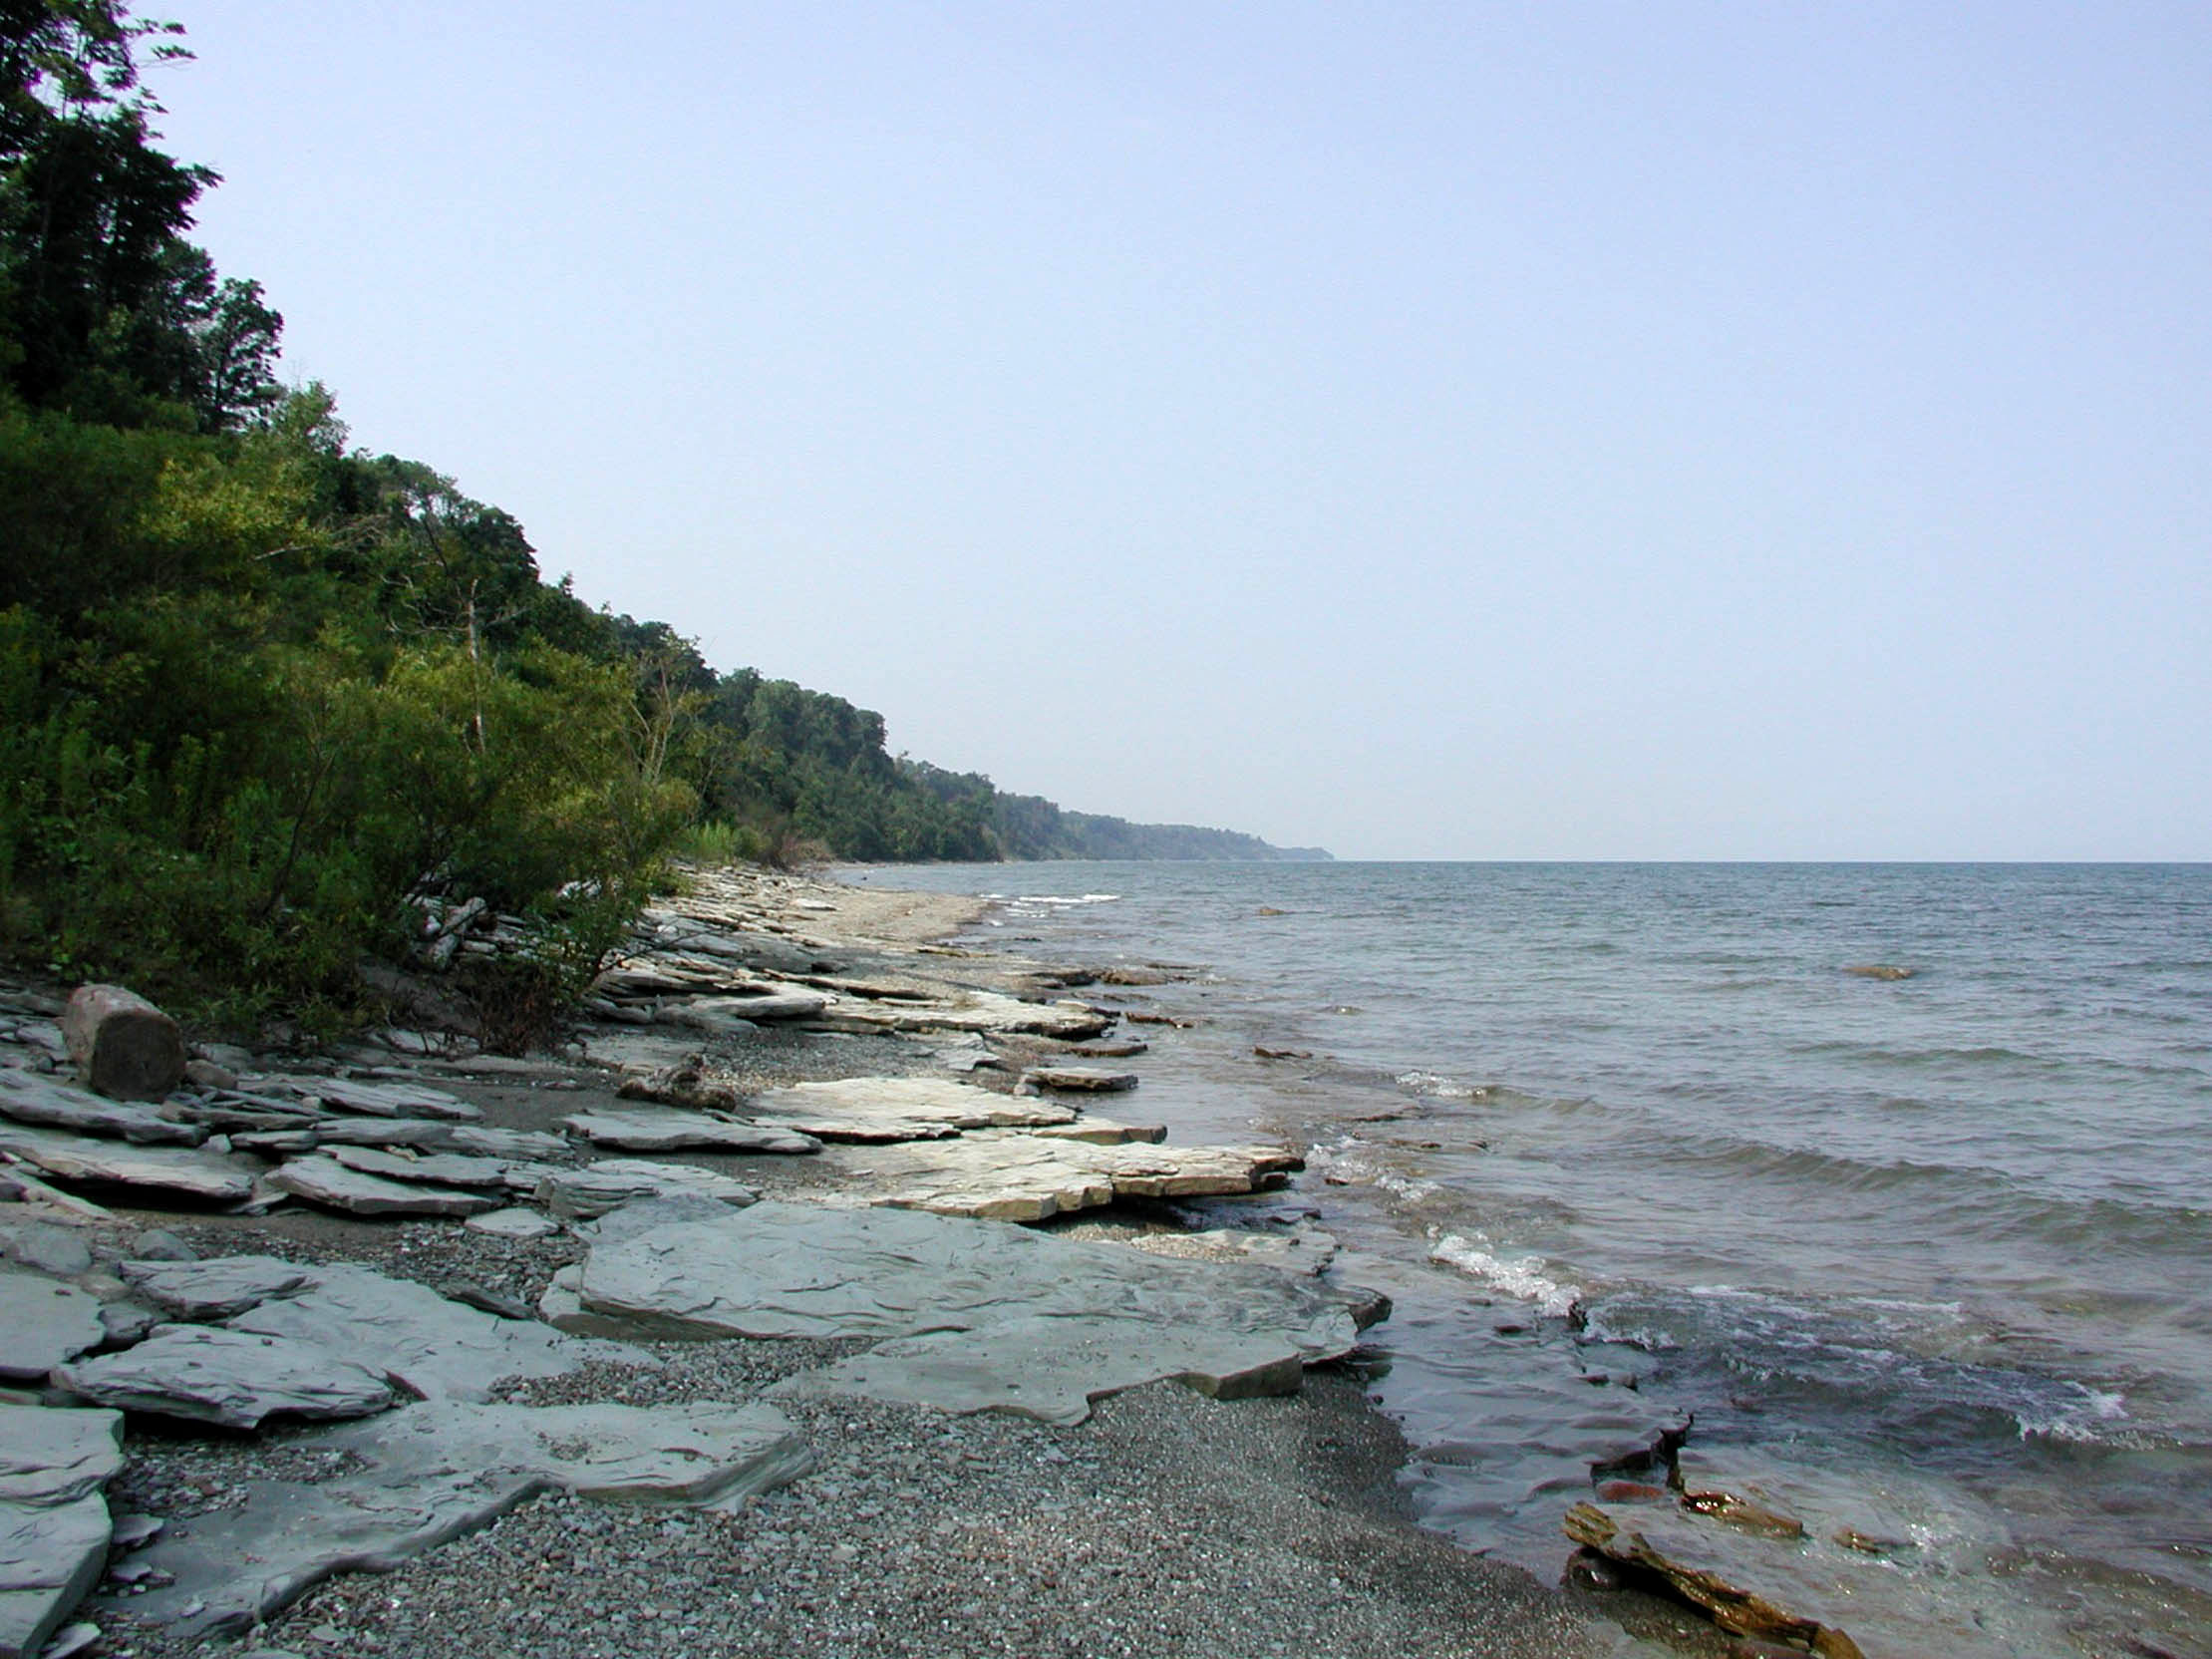 Great lakes seaway trail photos america 39 s byways for Landscaping rocks erie pa